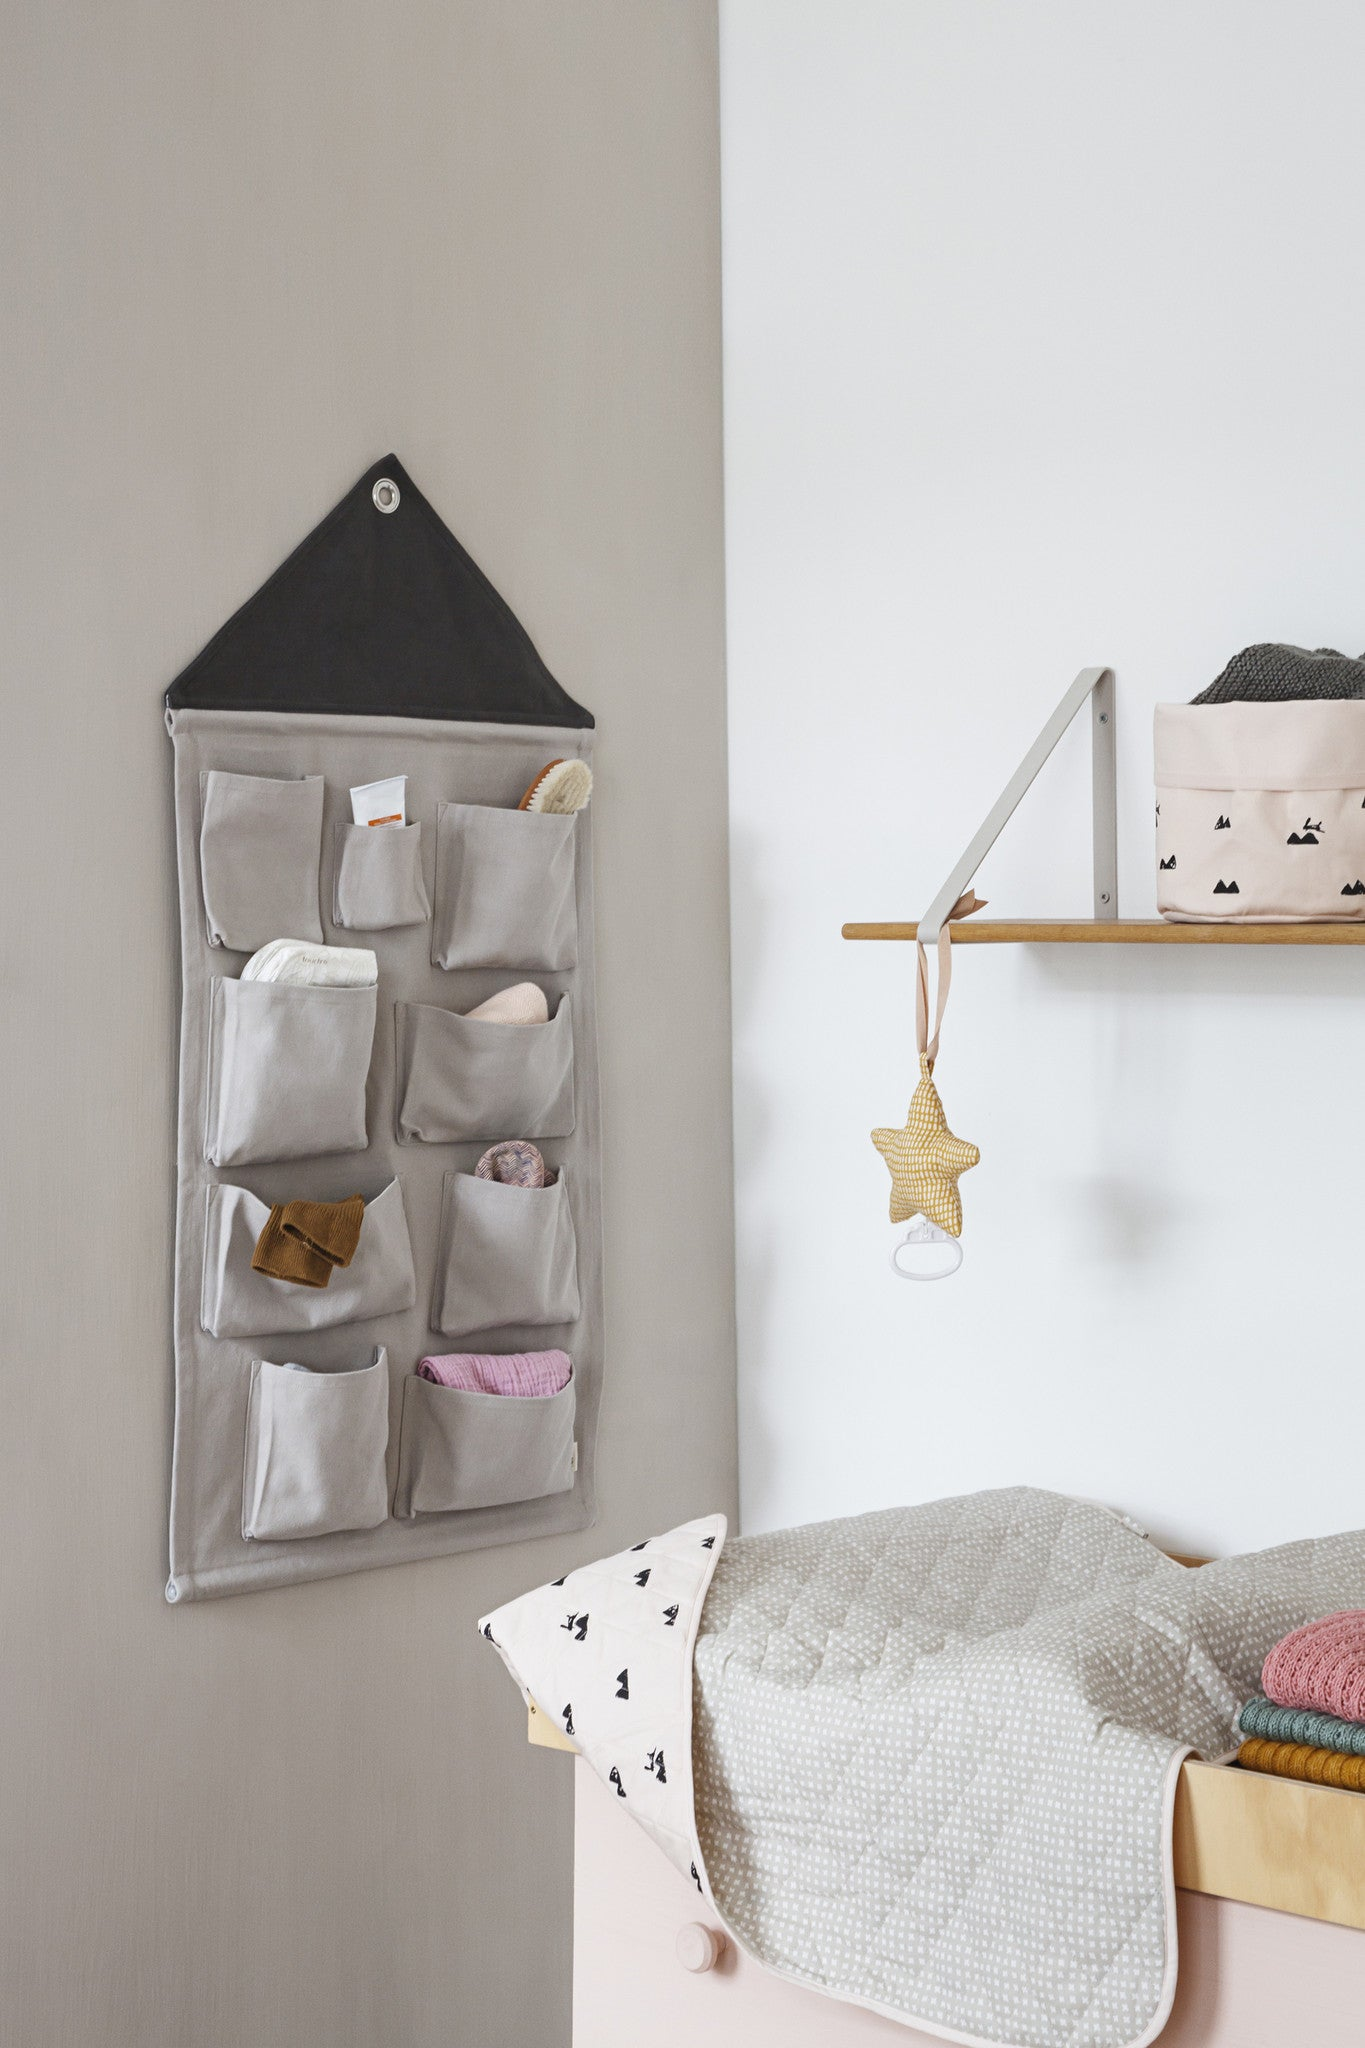 House Wall Storage